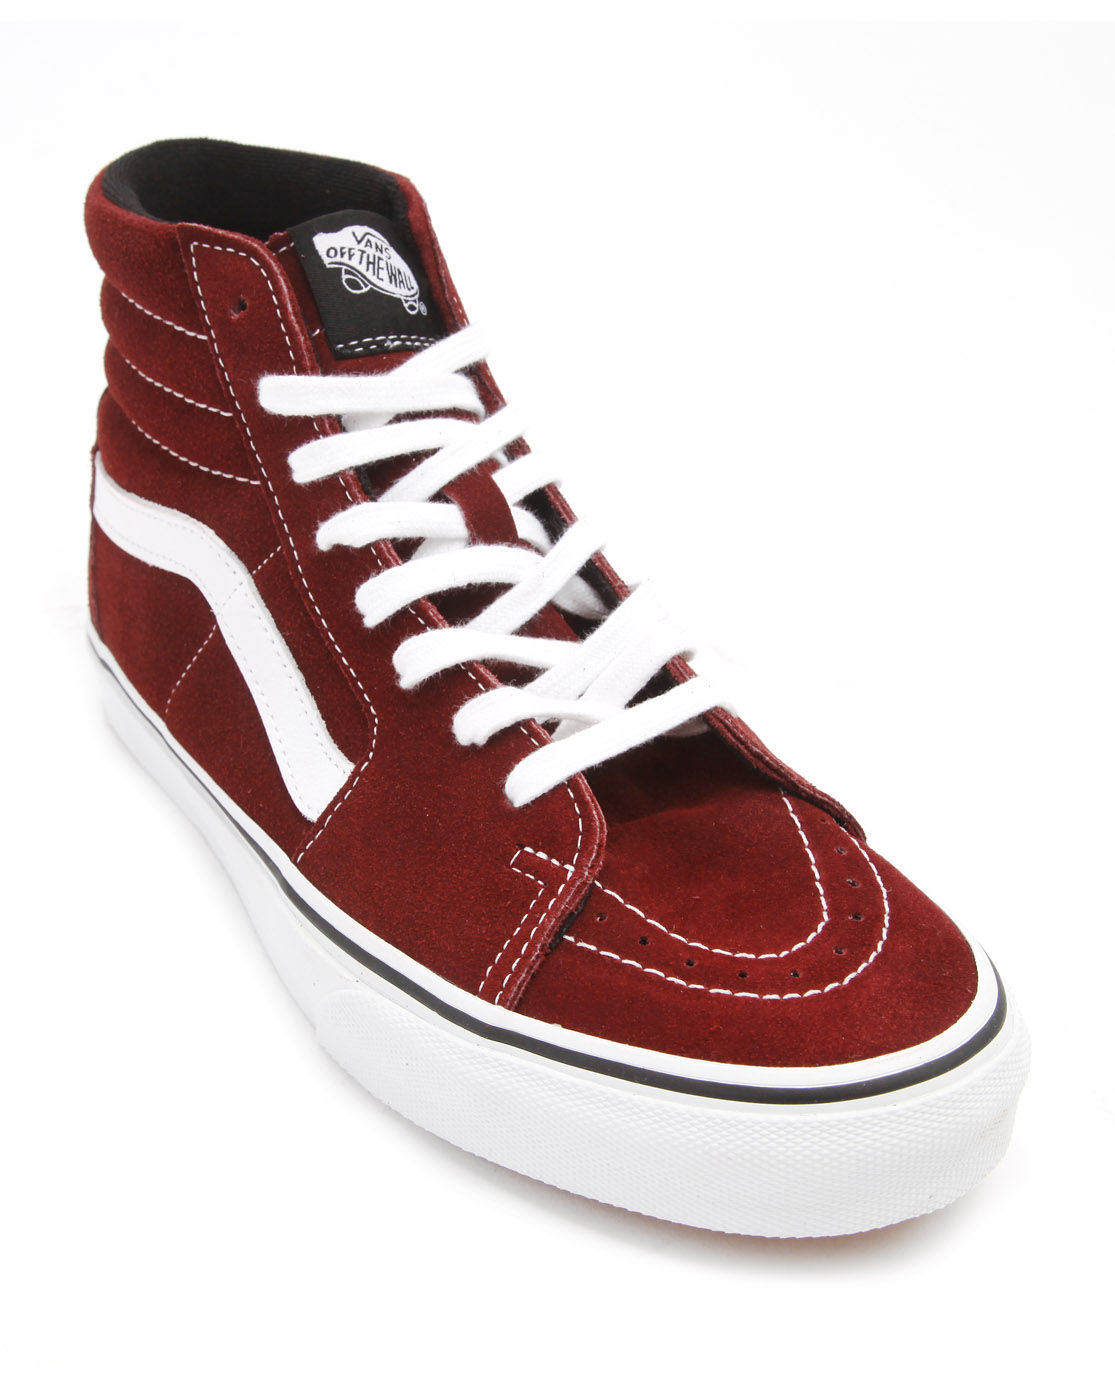 Vans Sk8 Hi Burgundy Suede Sneakers in Red for Men (burgundy) | Lyst